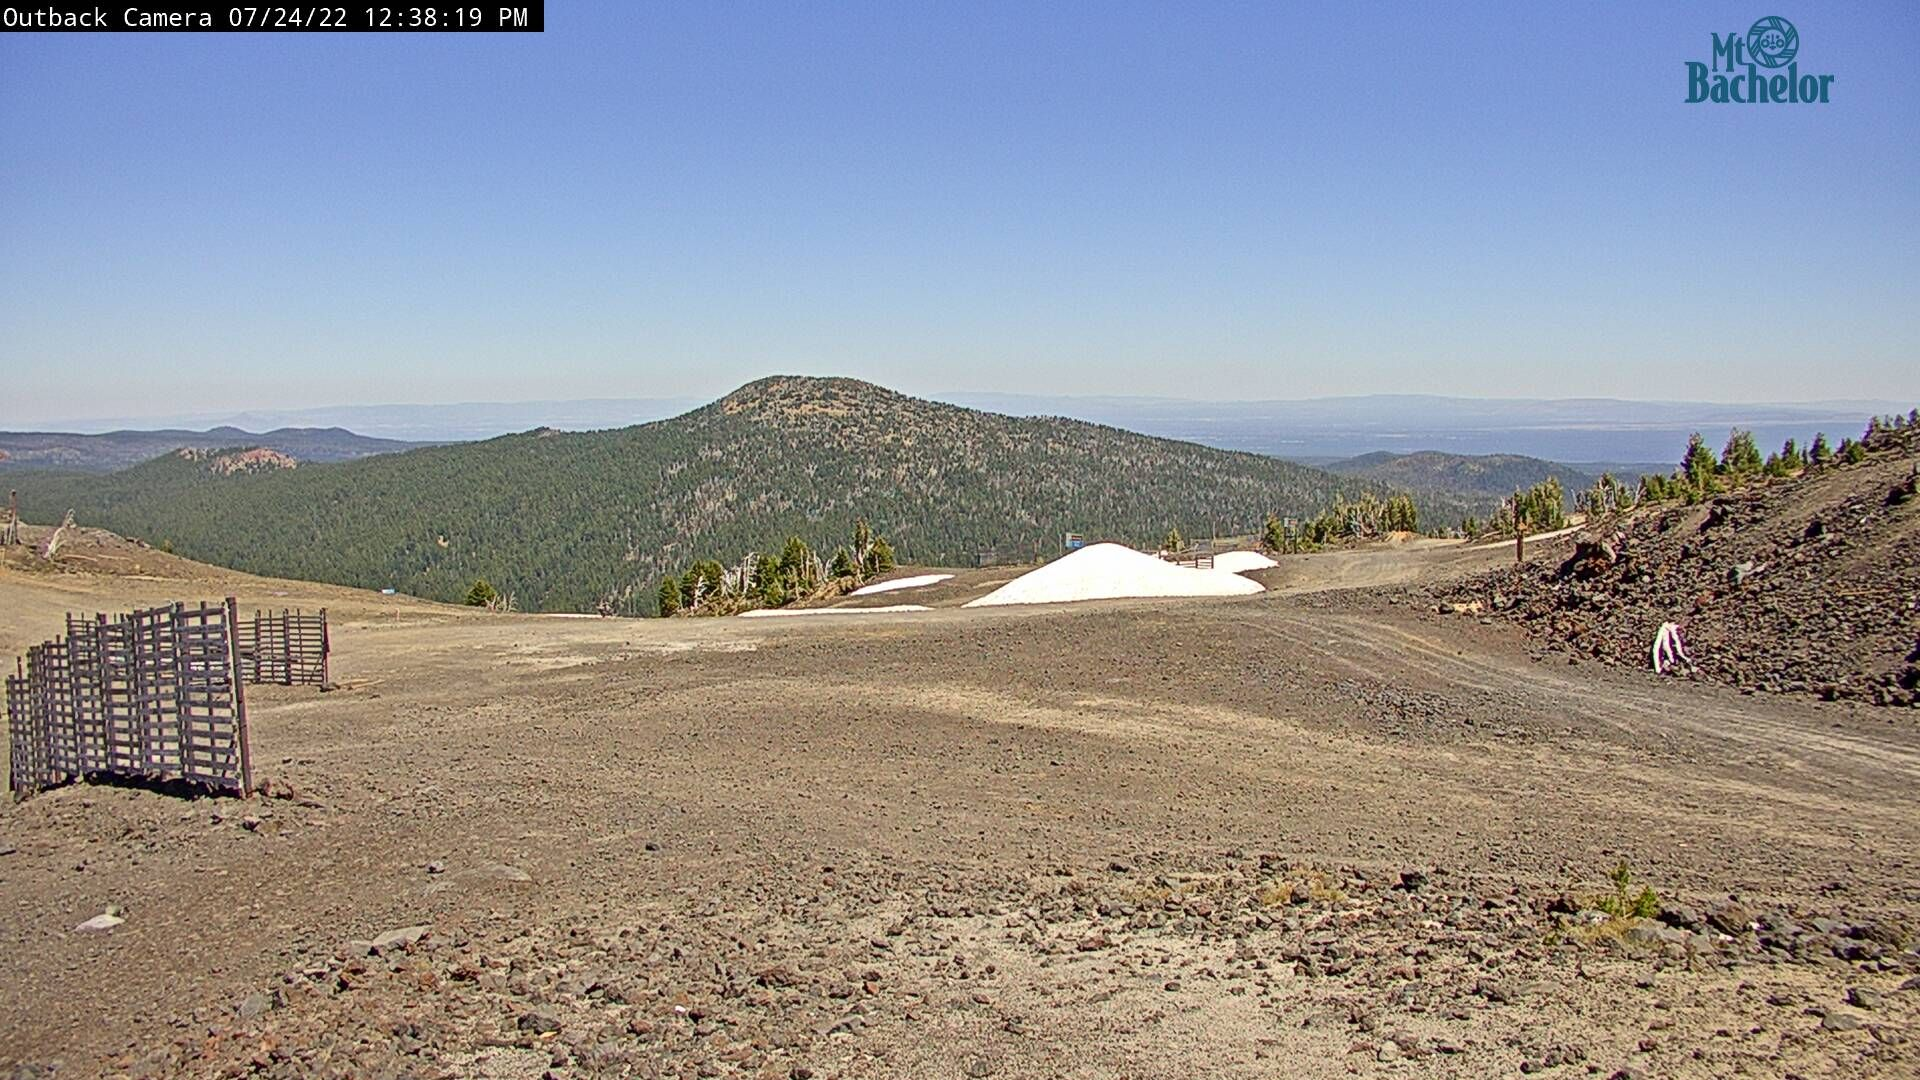 Mt. Bachelor Tumalo and Bend from Outback webcam image